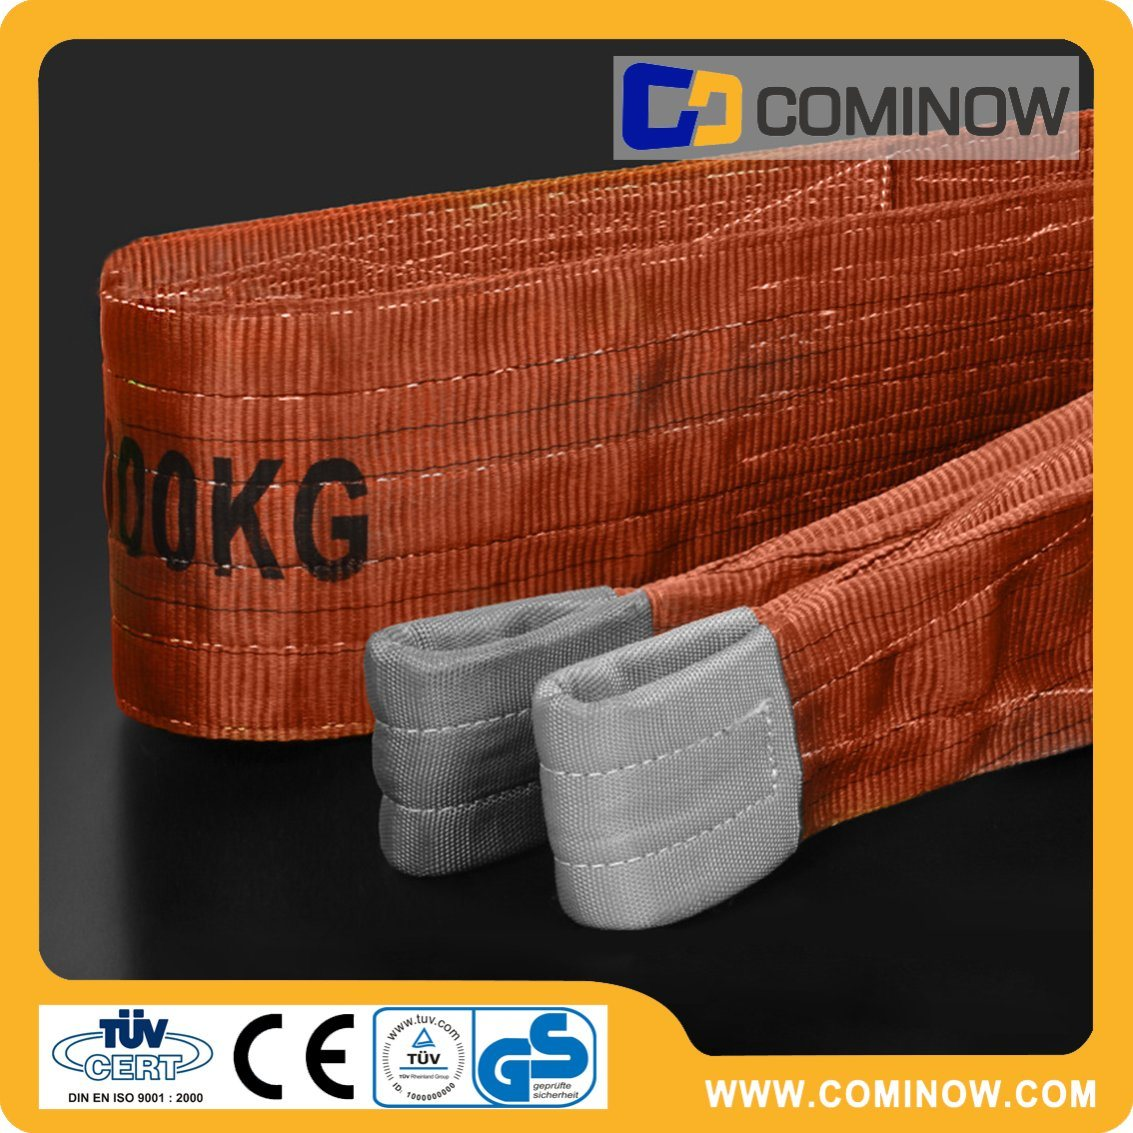 6t Polyester Webbing Sling with Reinforced Eyes En1492-1